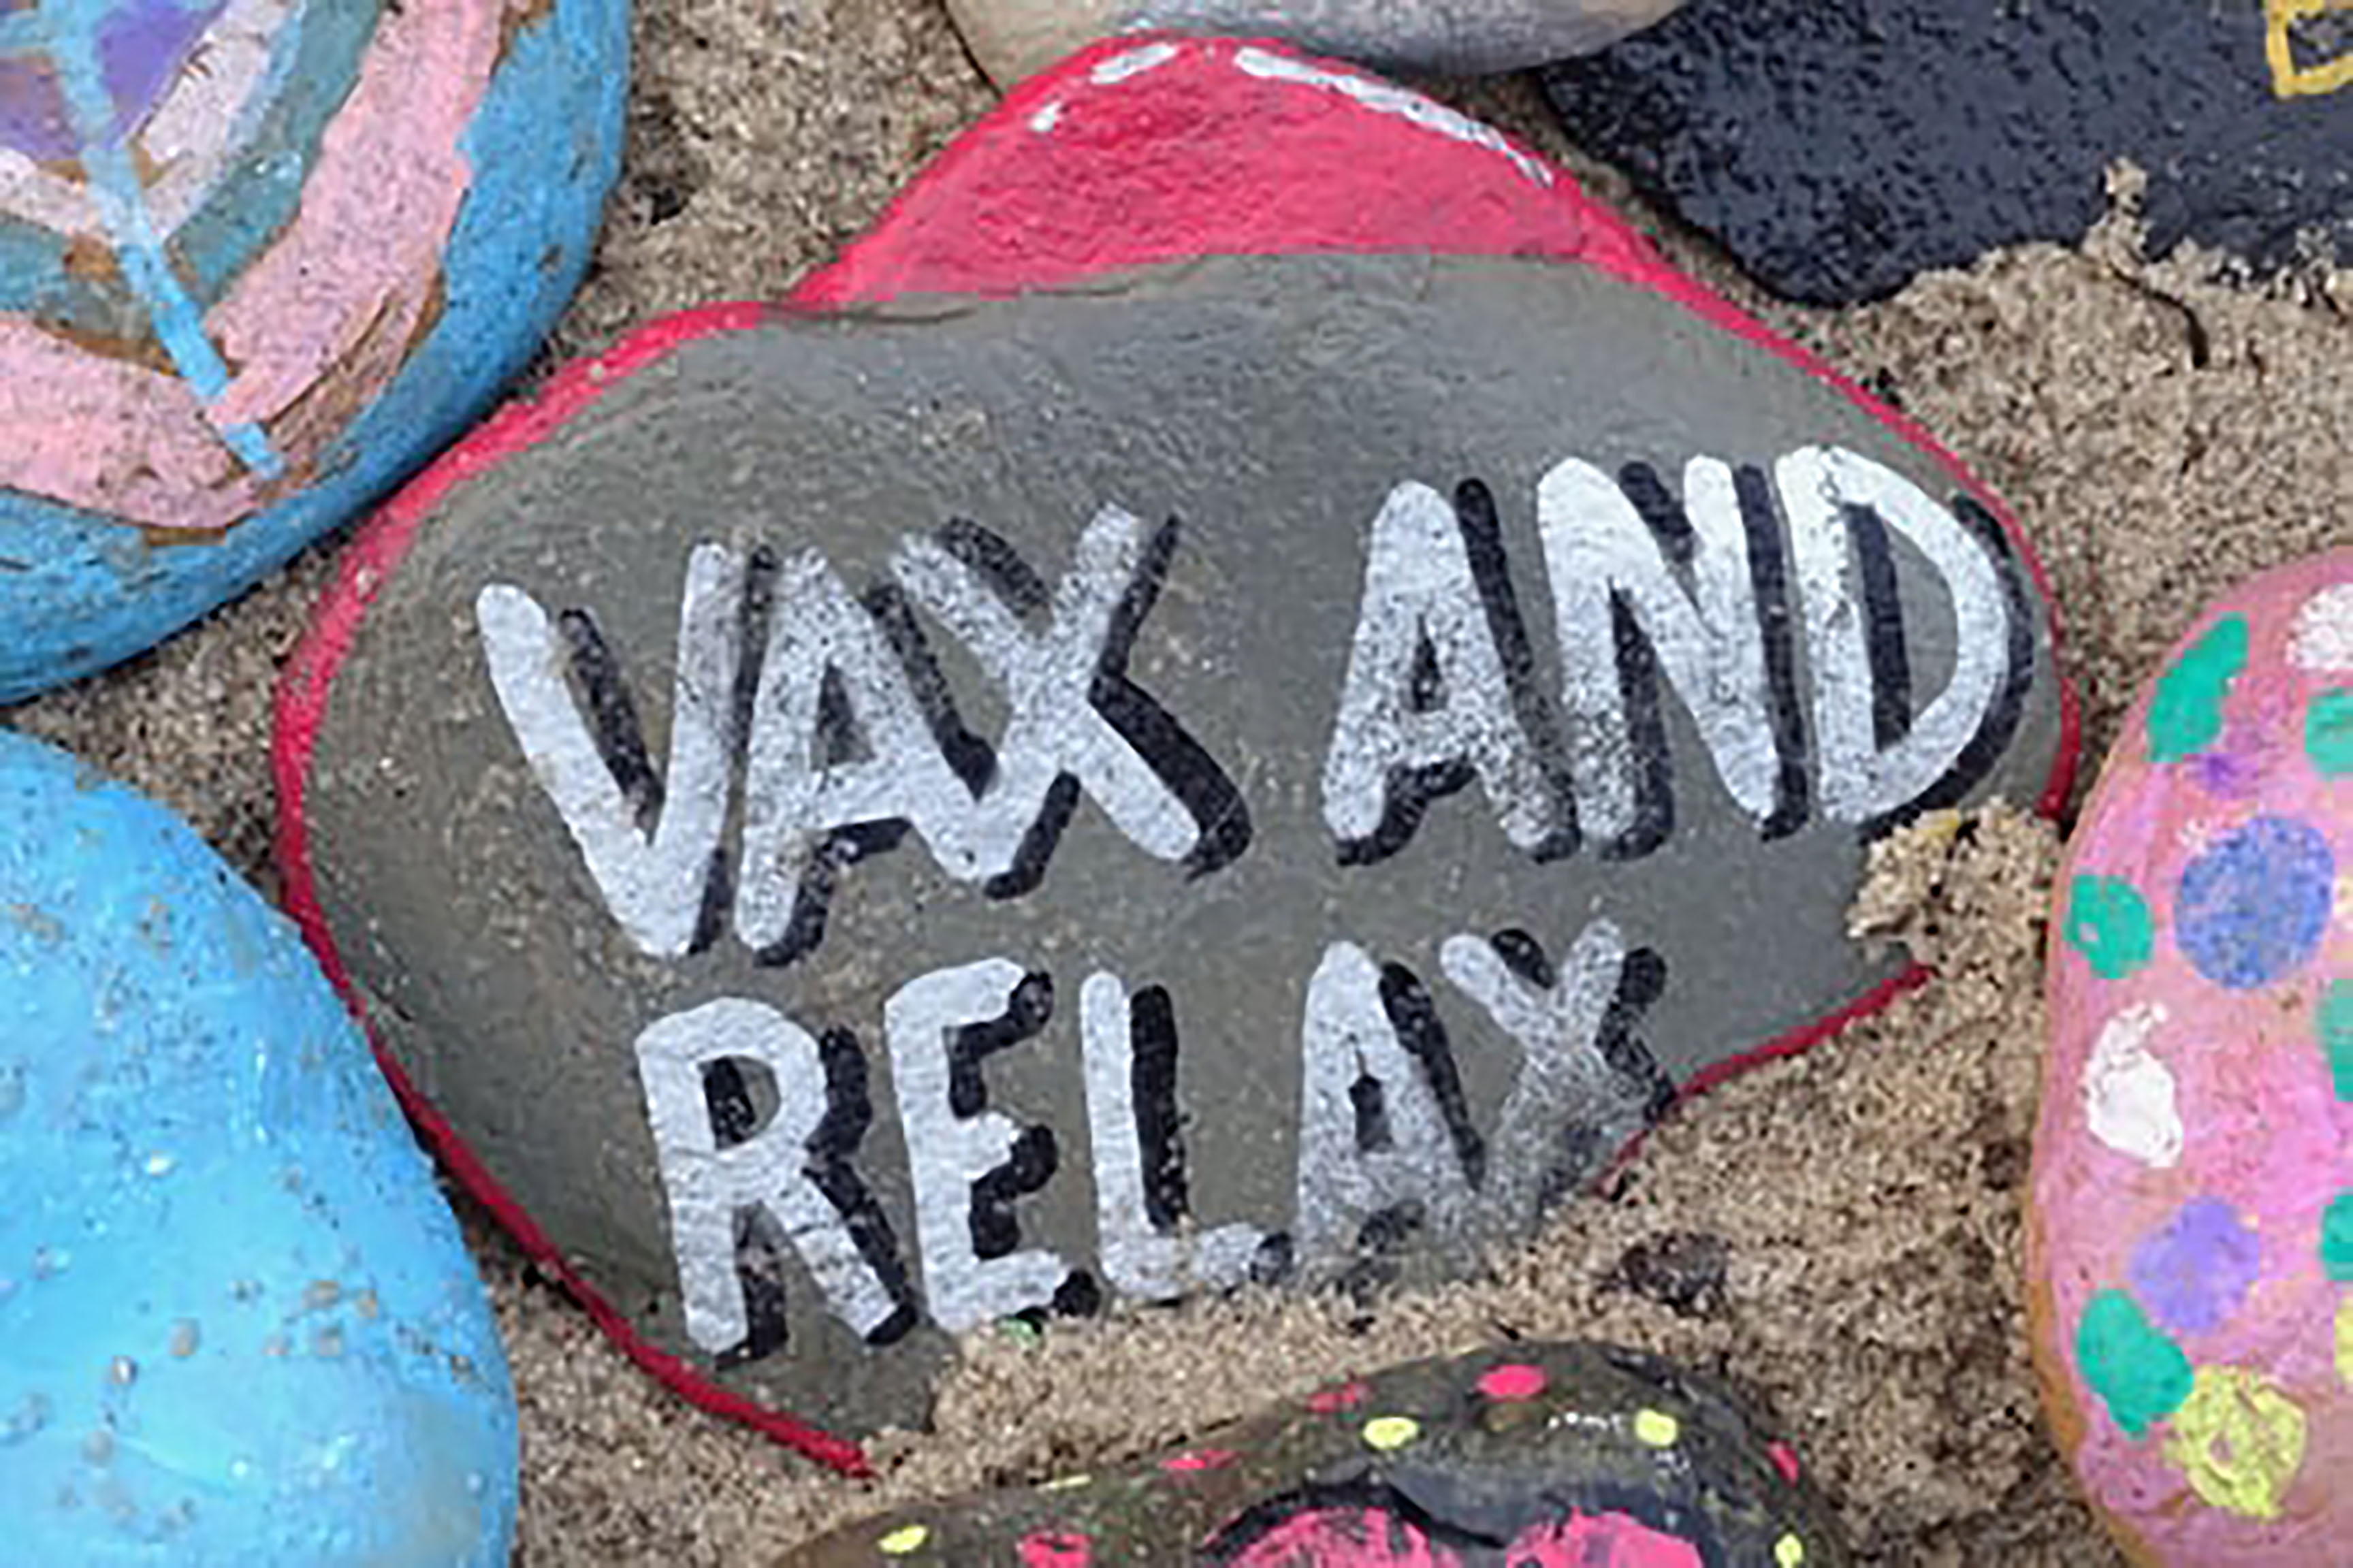 vax and relax